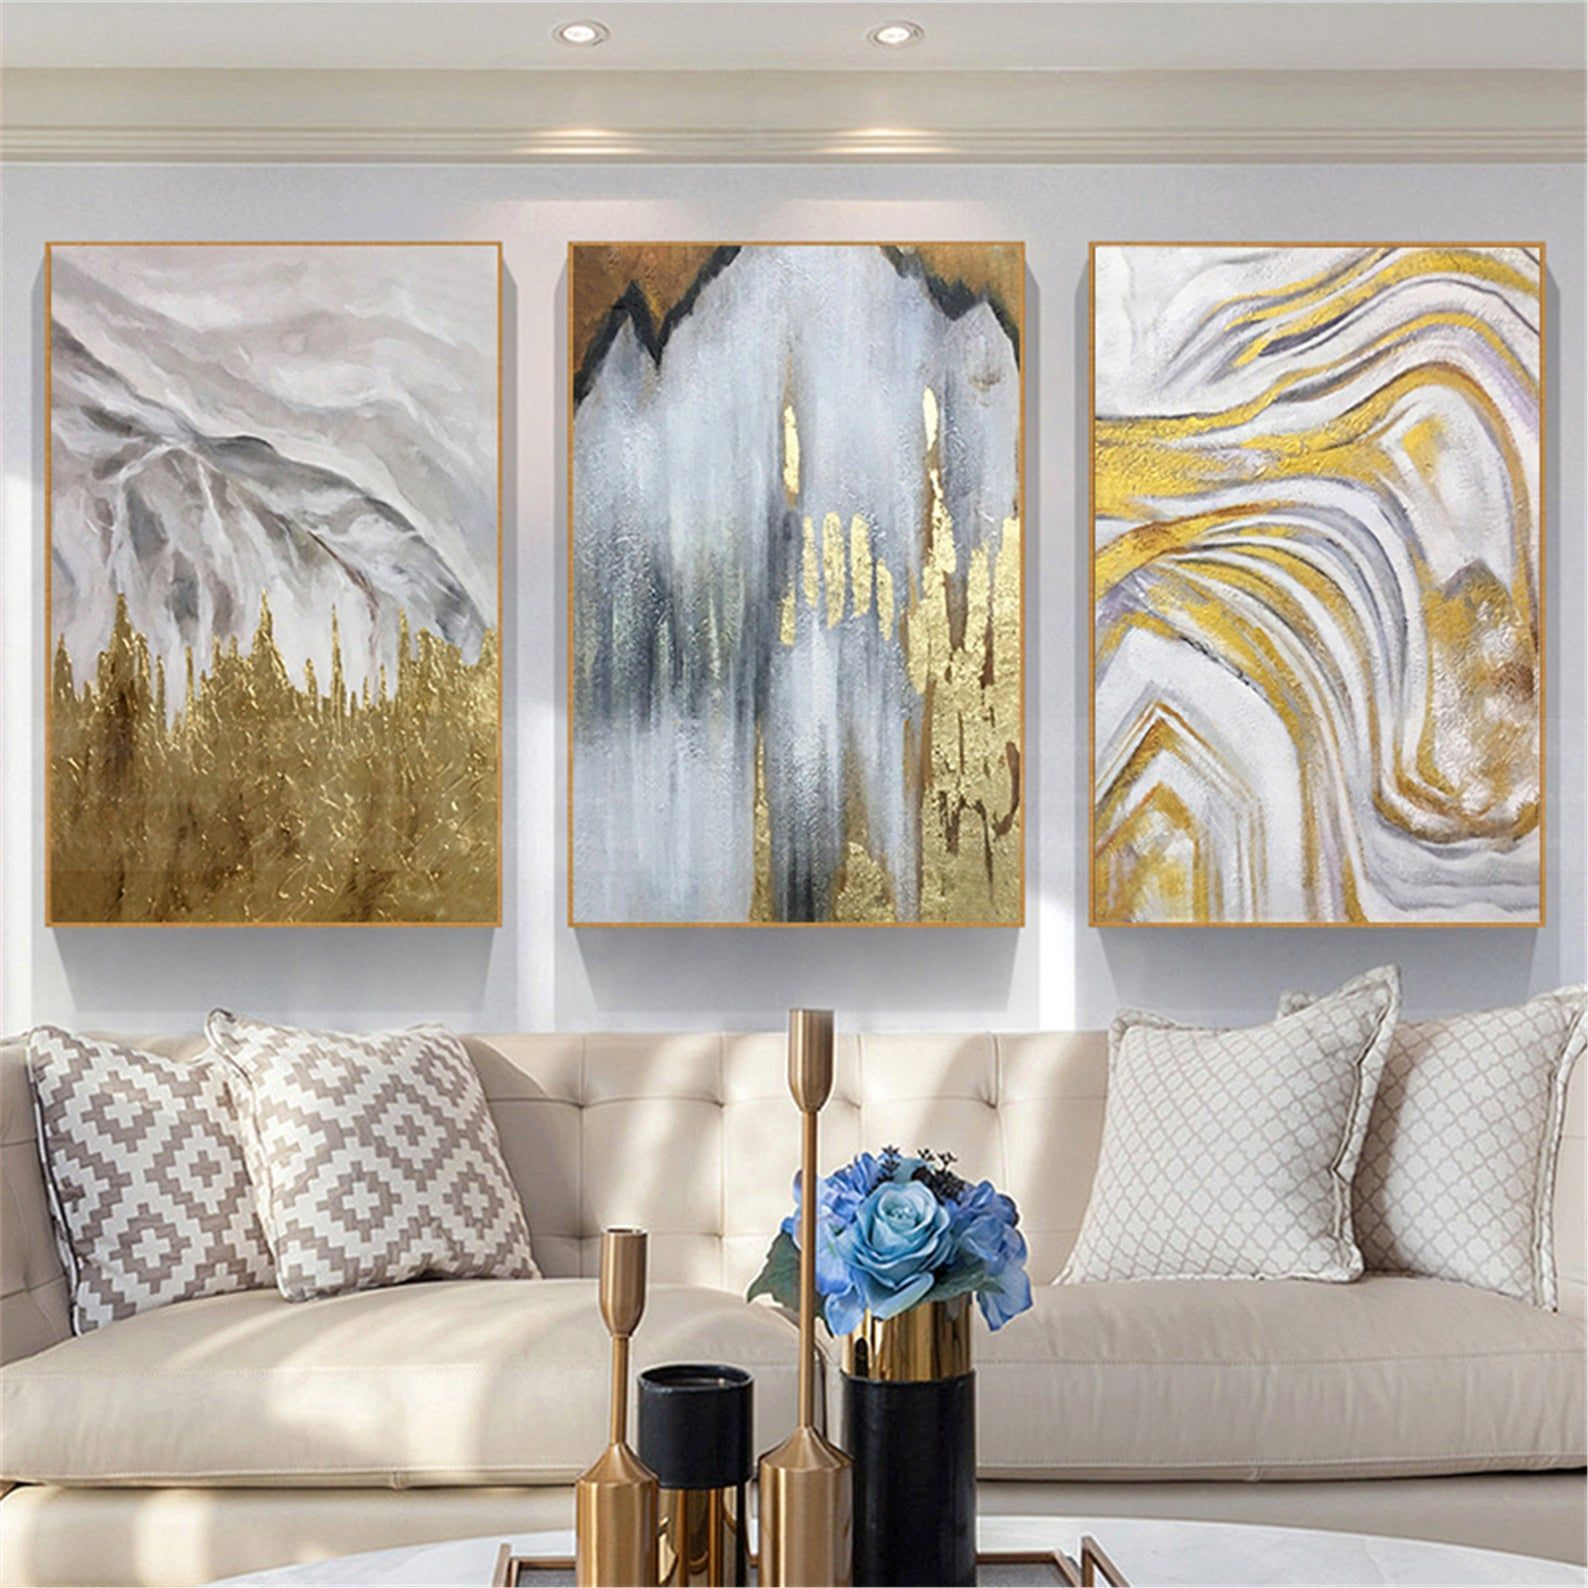 3 Panels Gold Leaf Abstract Painting Framed Canvas Wall Art Etsy Canvas Wall Art Living Room Wall Art Living Room Living Room Canvas Abstract art living room